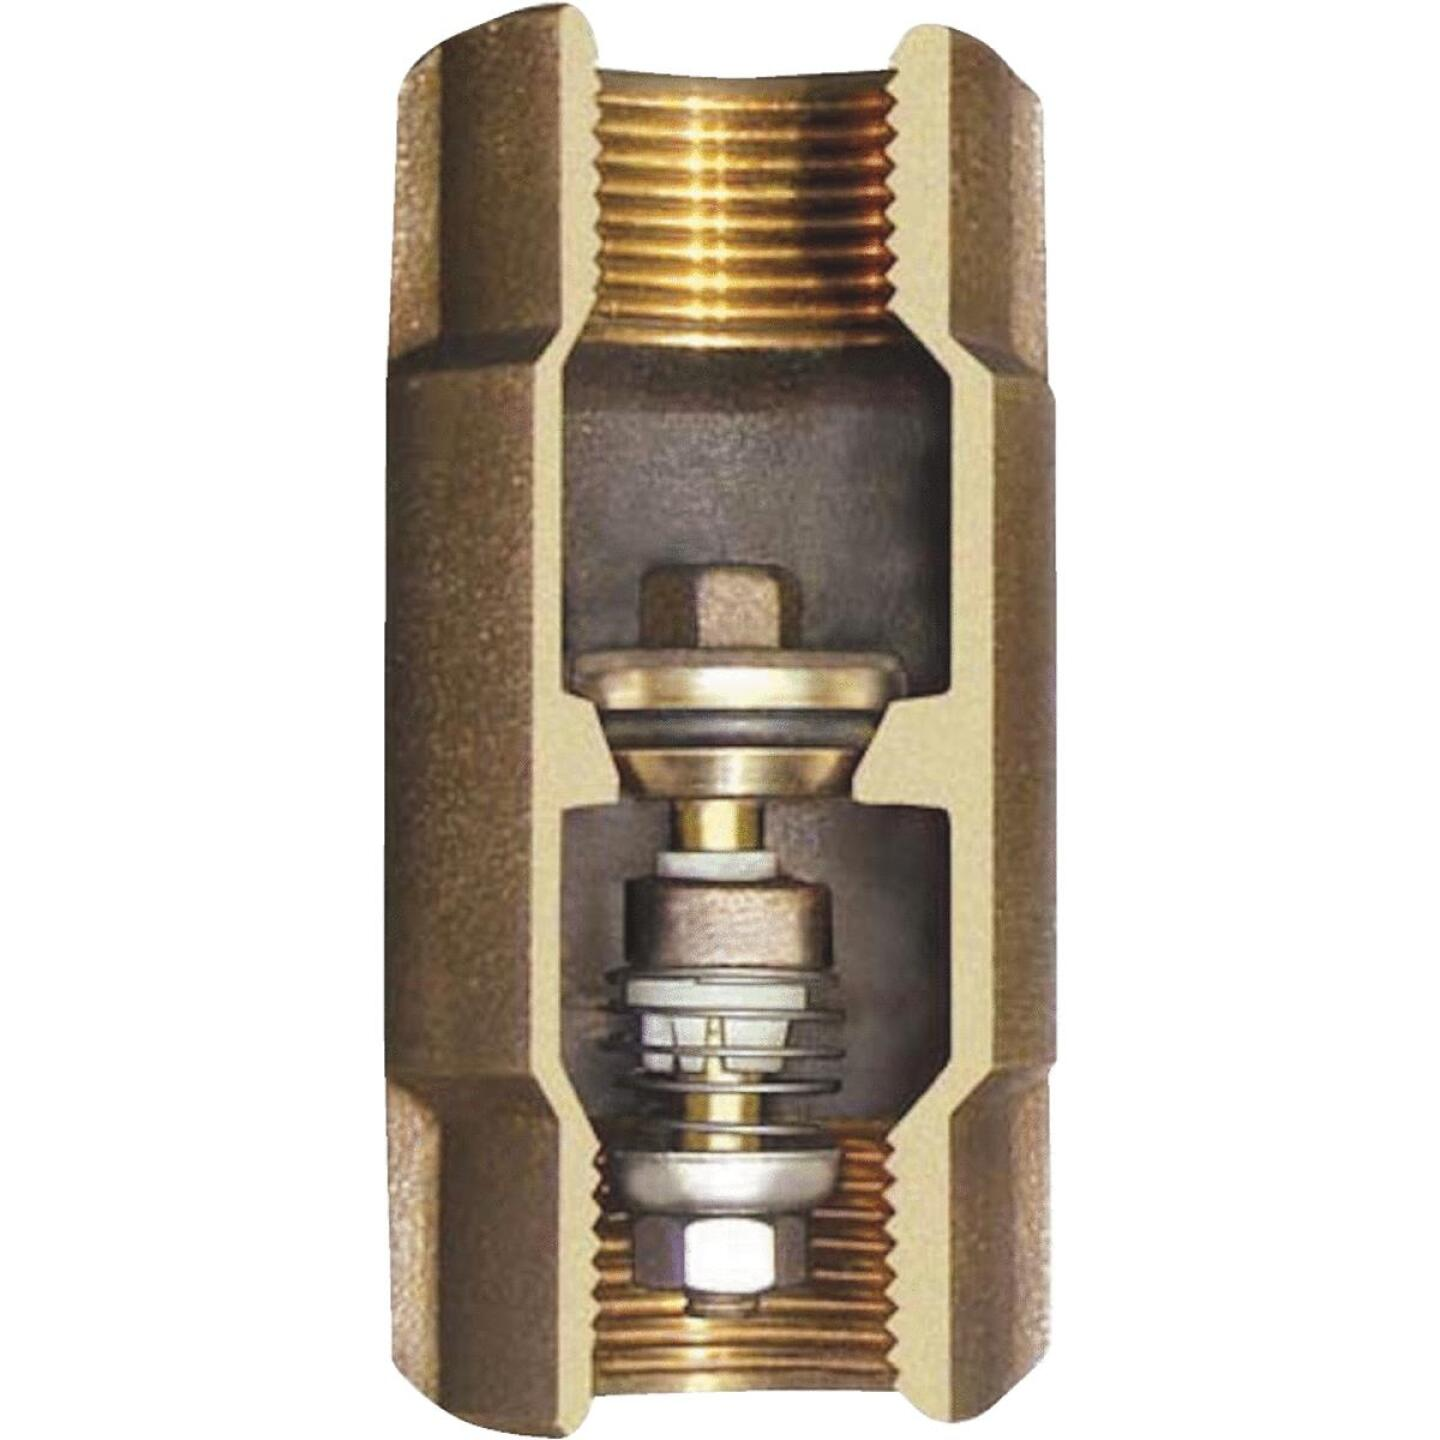 Simmons 1-1/4 In. Silicon Bronze Lead Free Check Valve Image 1